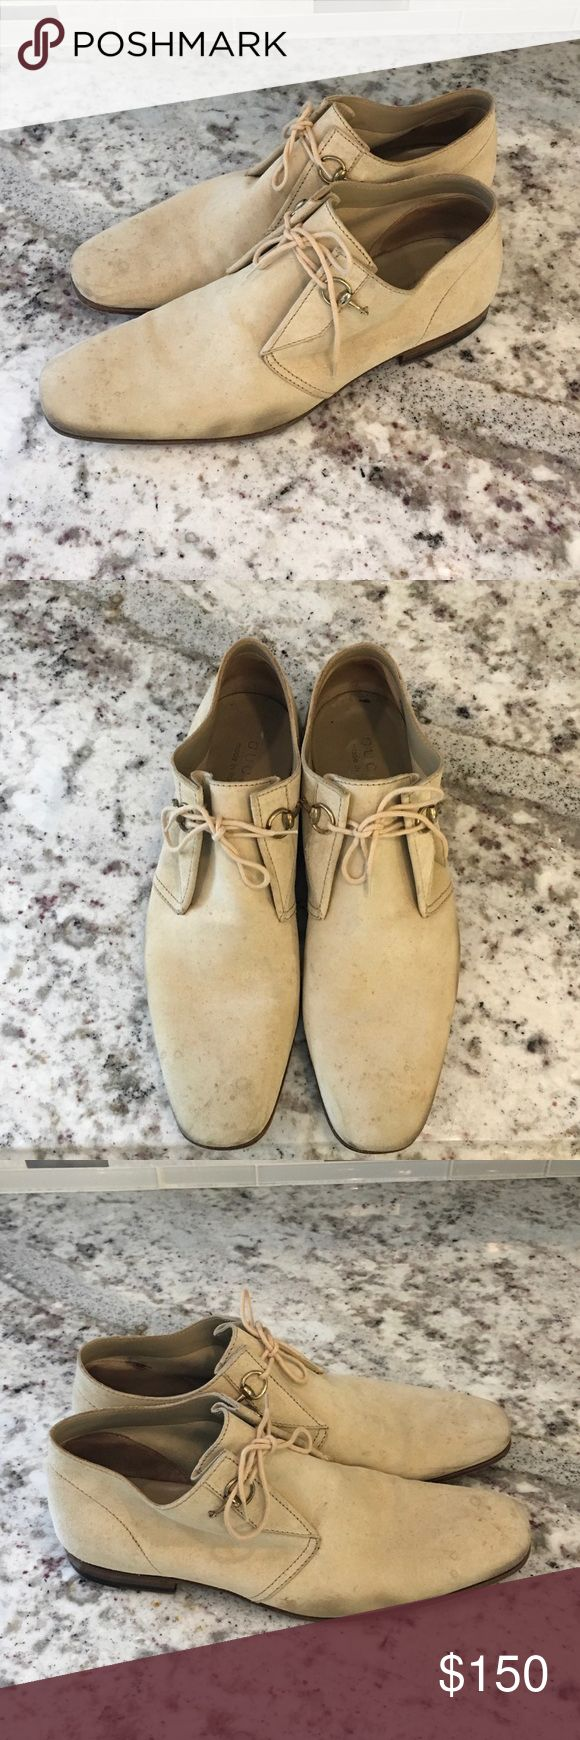 Men's Gucci Oxford Worn. Tan suede men's Gucci shoe. The tops of the shoes have some stain but once cleaned with suede shoe cleaner, they will look brand new. Gucci Shoes Oxfords & Derbys